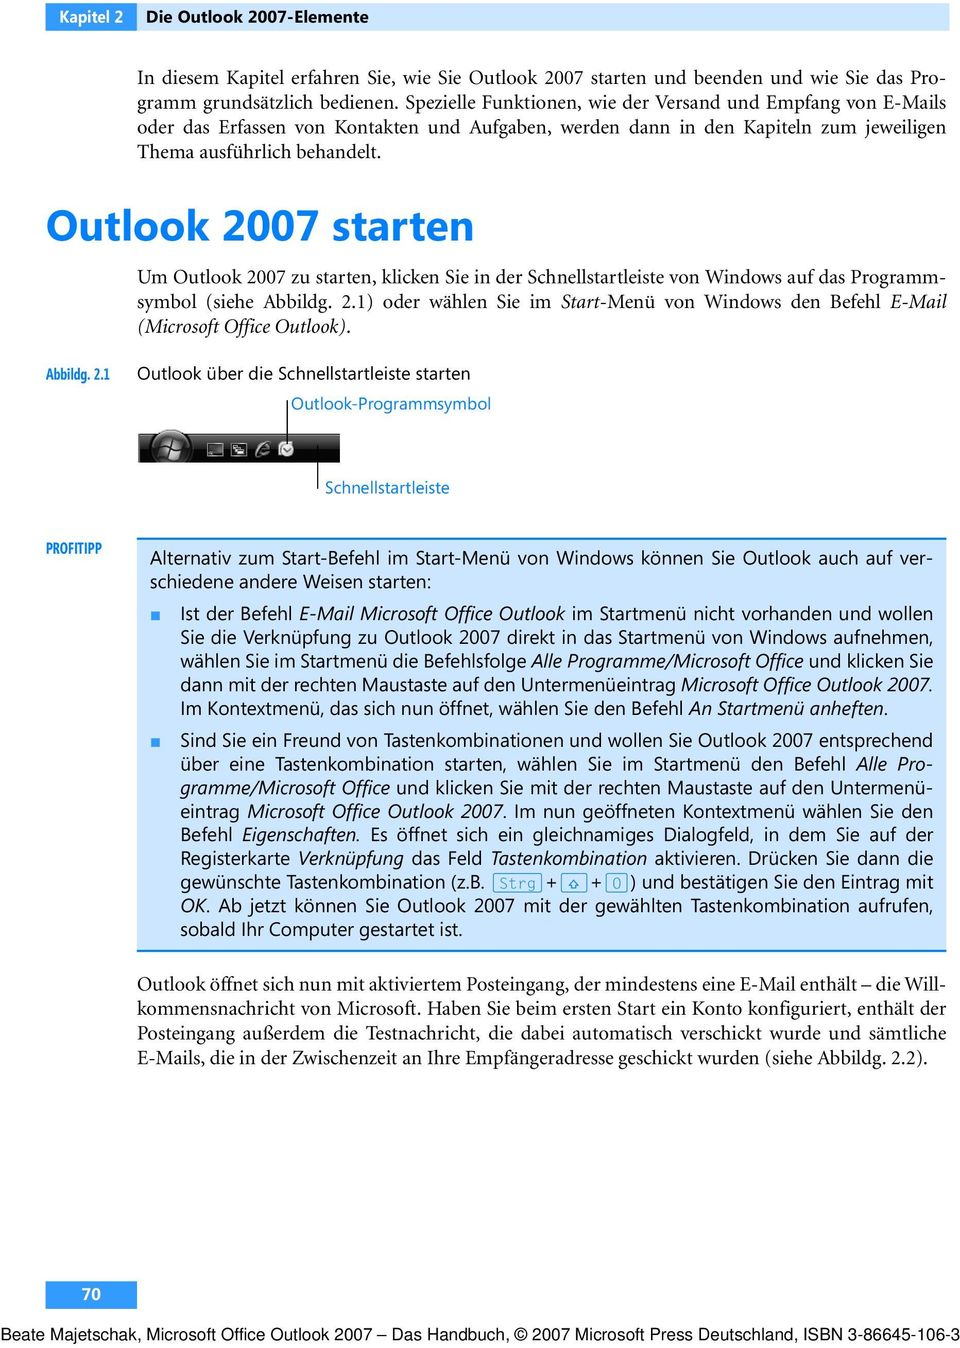 how to start outlook 2007